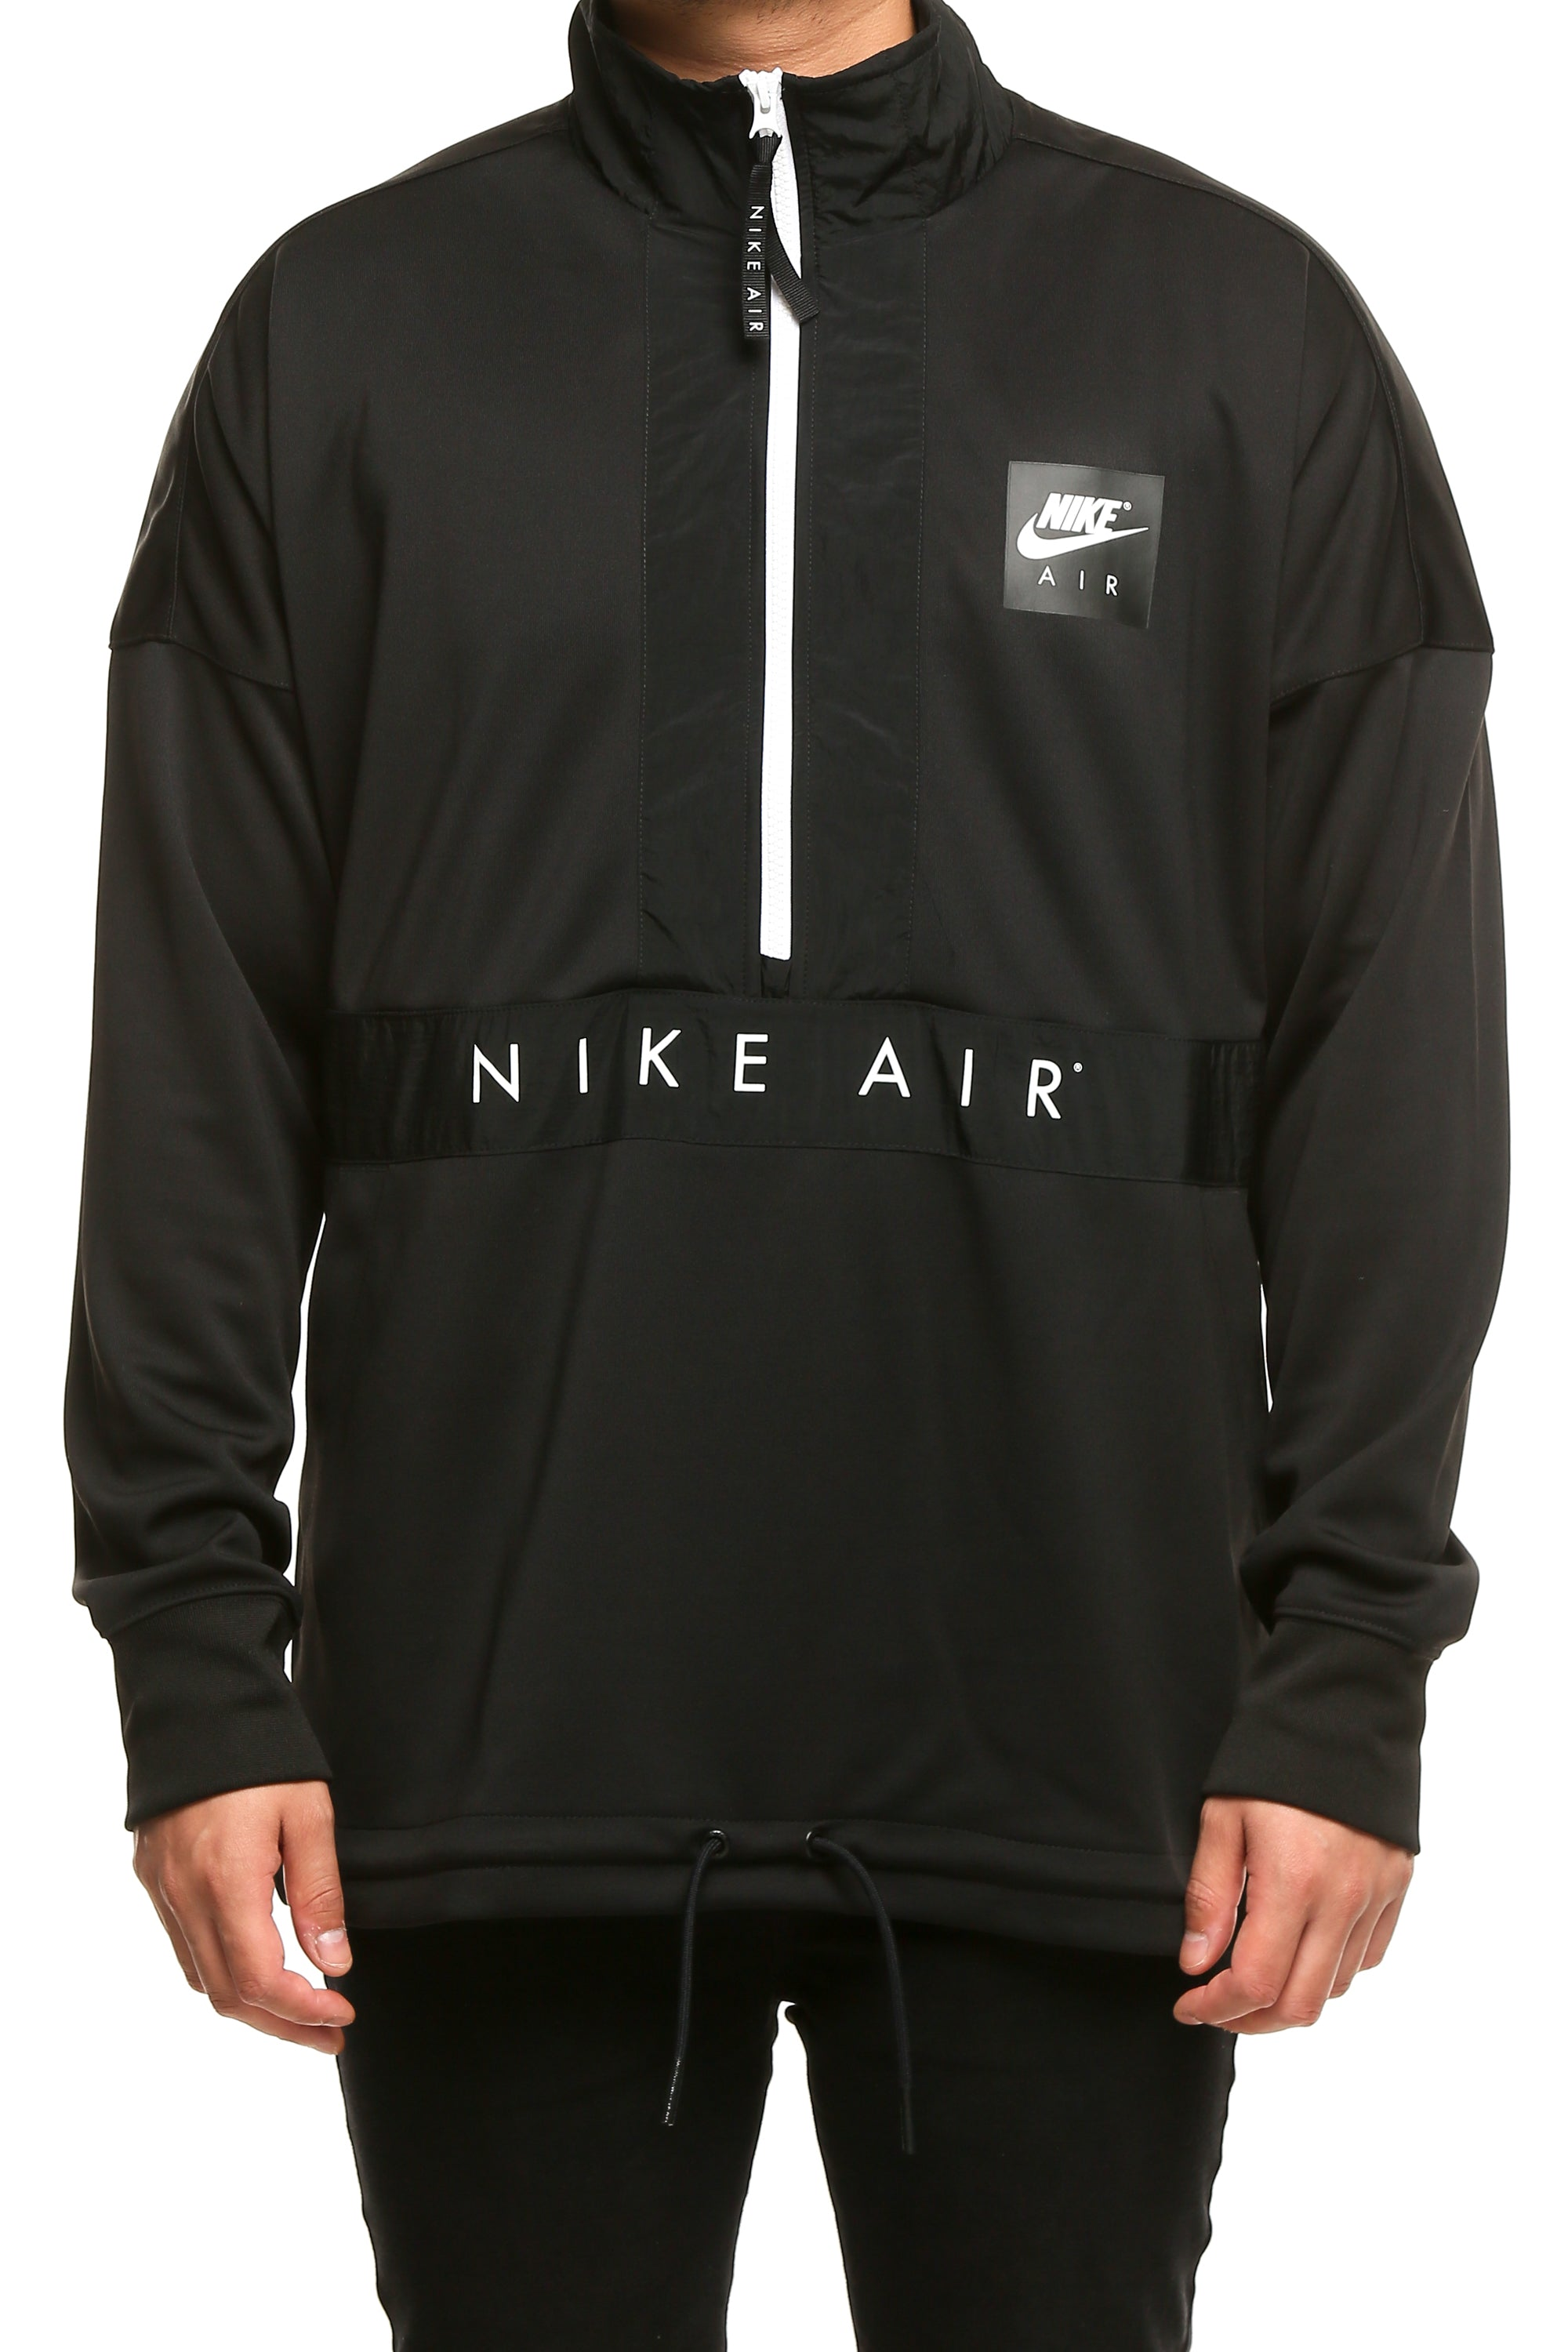 HAZE x Nike Air Force 1 Destroyer Jacket | Jackets, Nike air